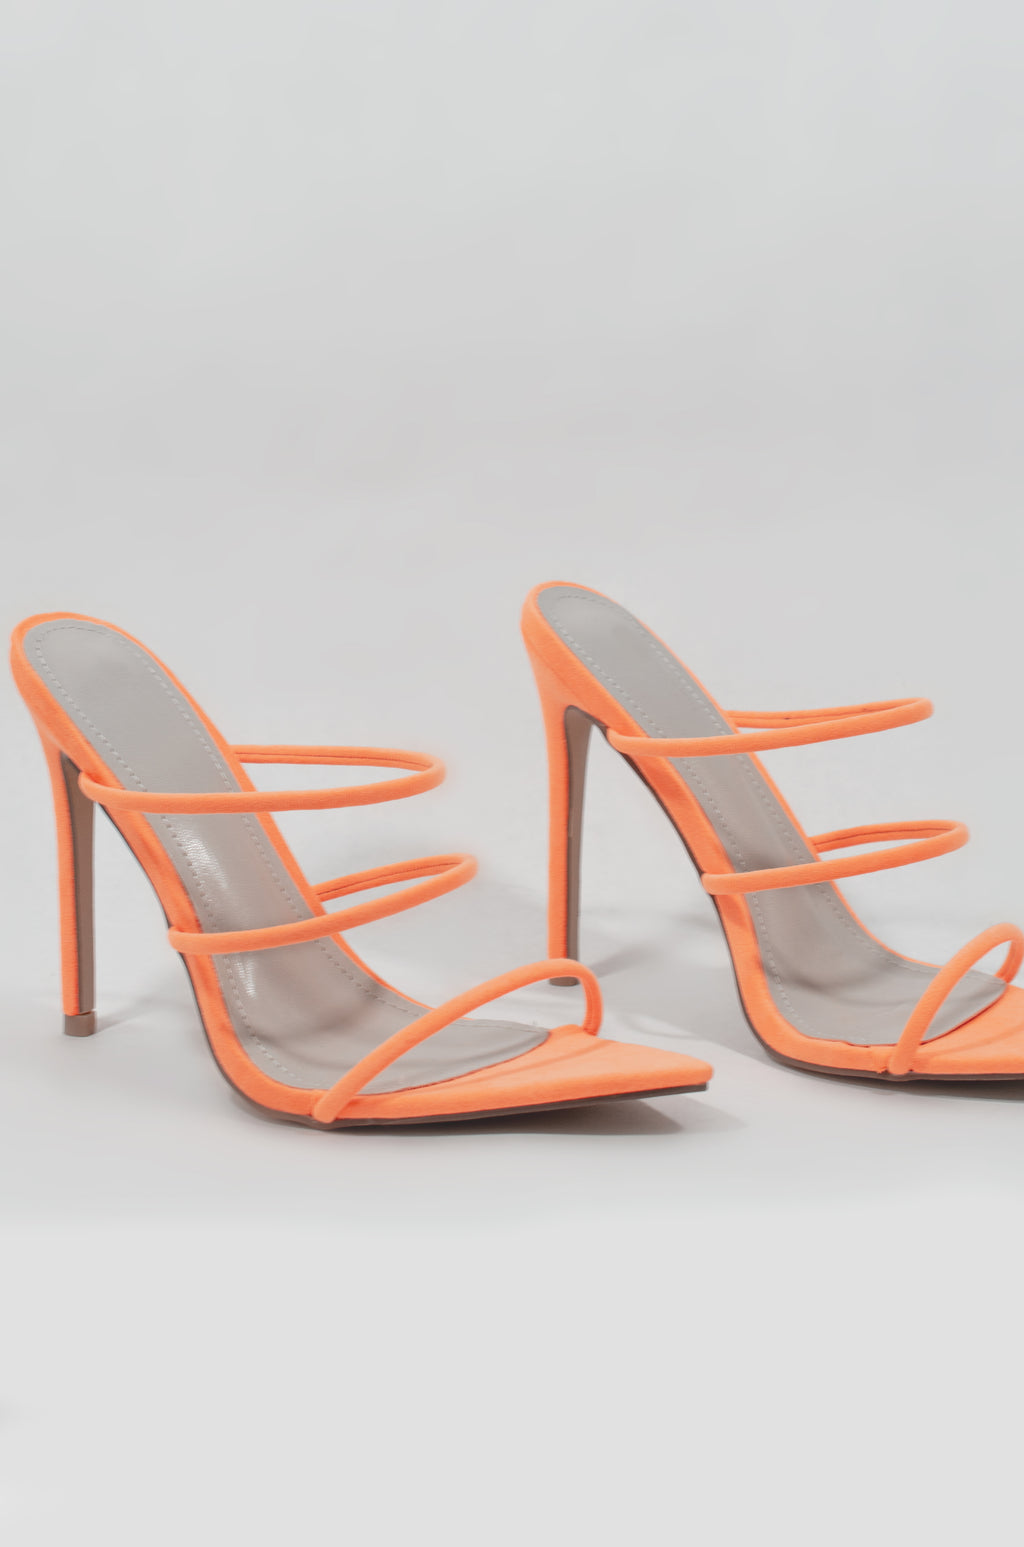 Unforgettable - Neon Orange Strappy Heels